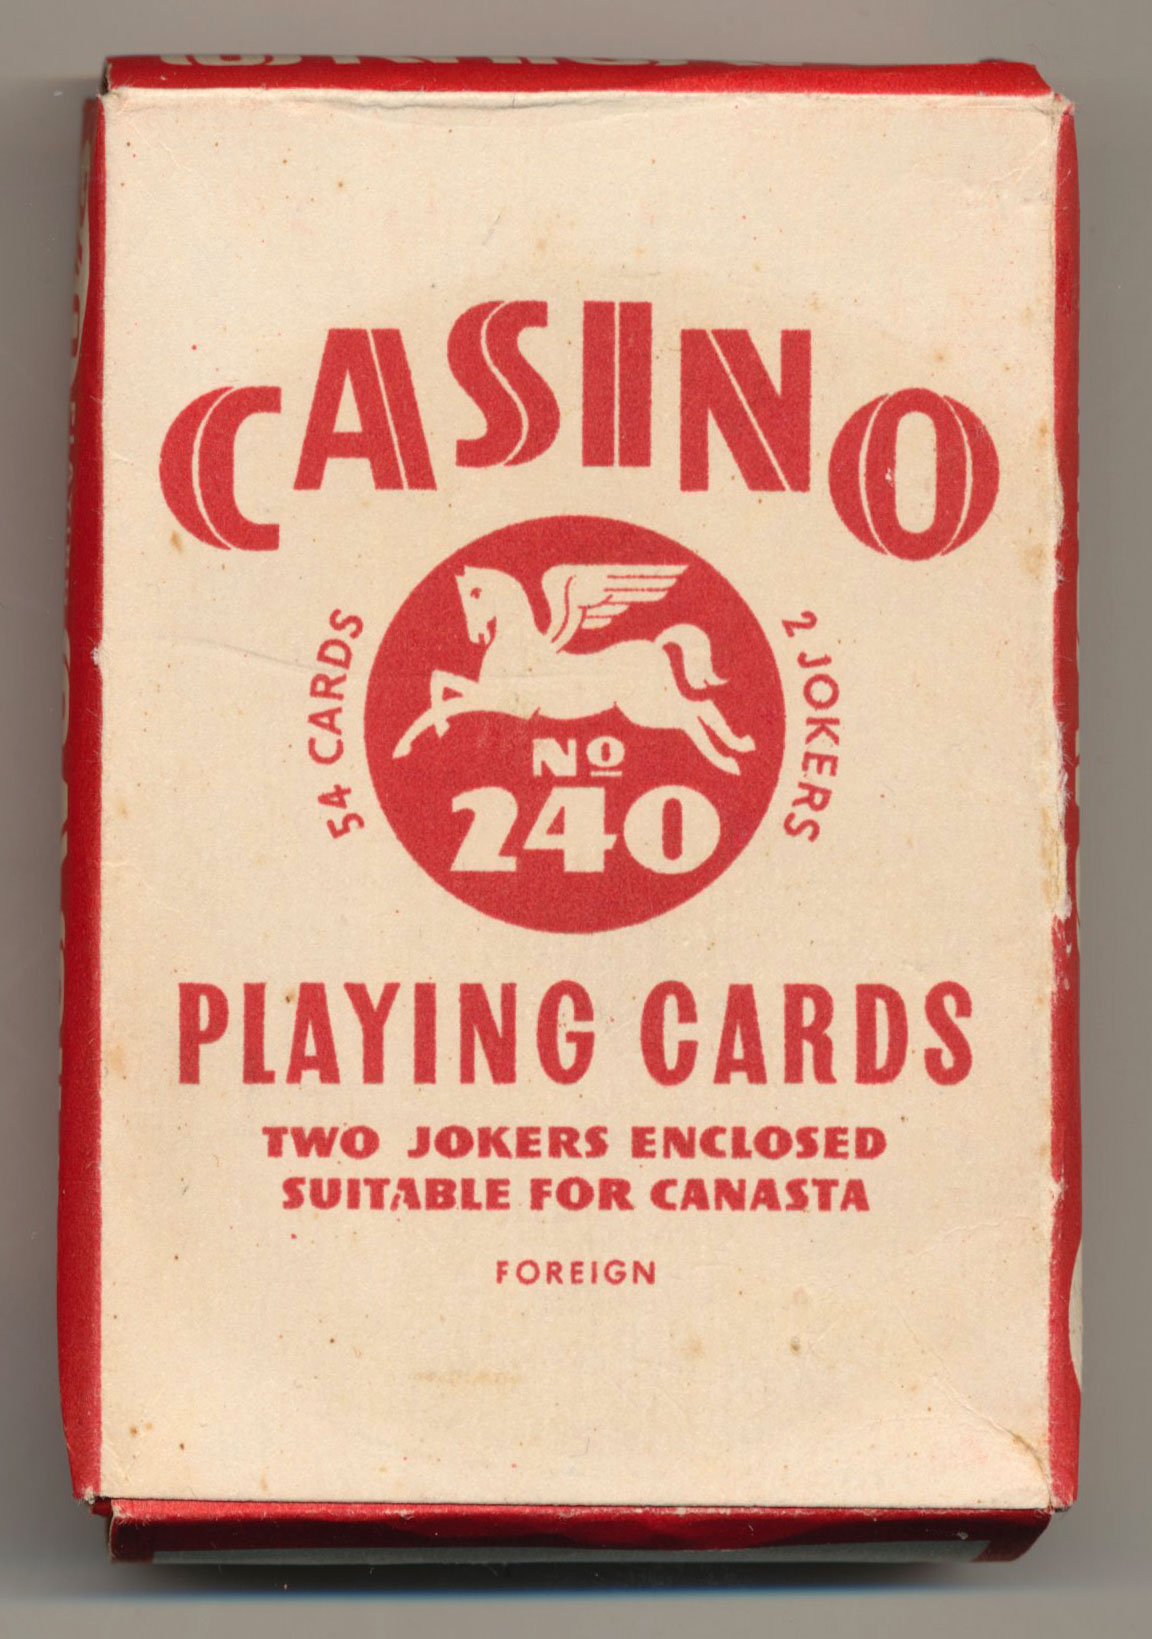 No.240 'Casino' playing cards manufactured by Obchodní Tiskárny, 1955, in importation duty wrapper